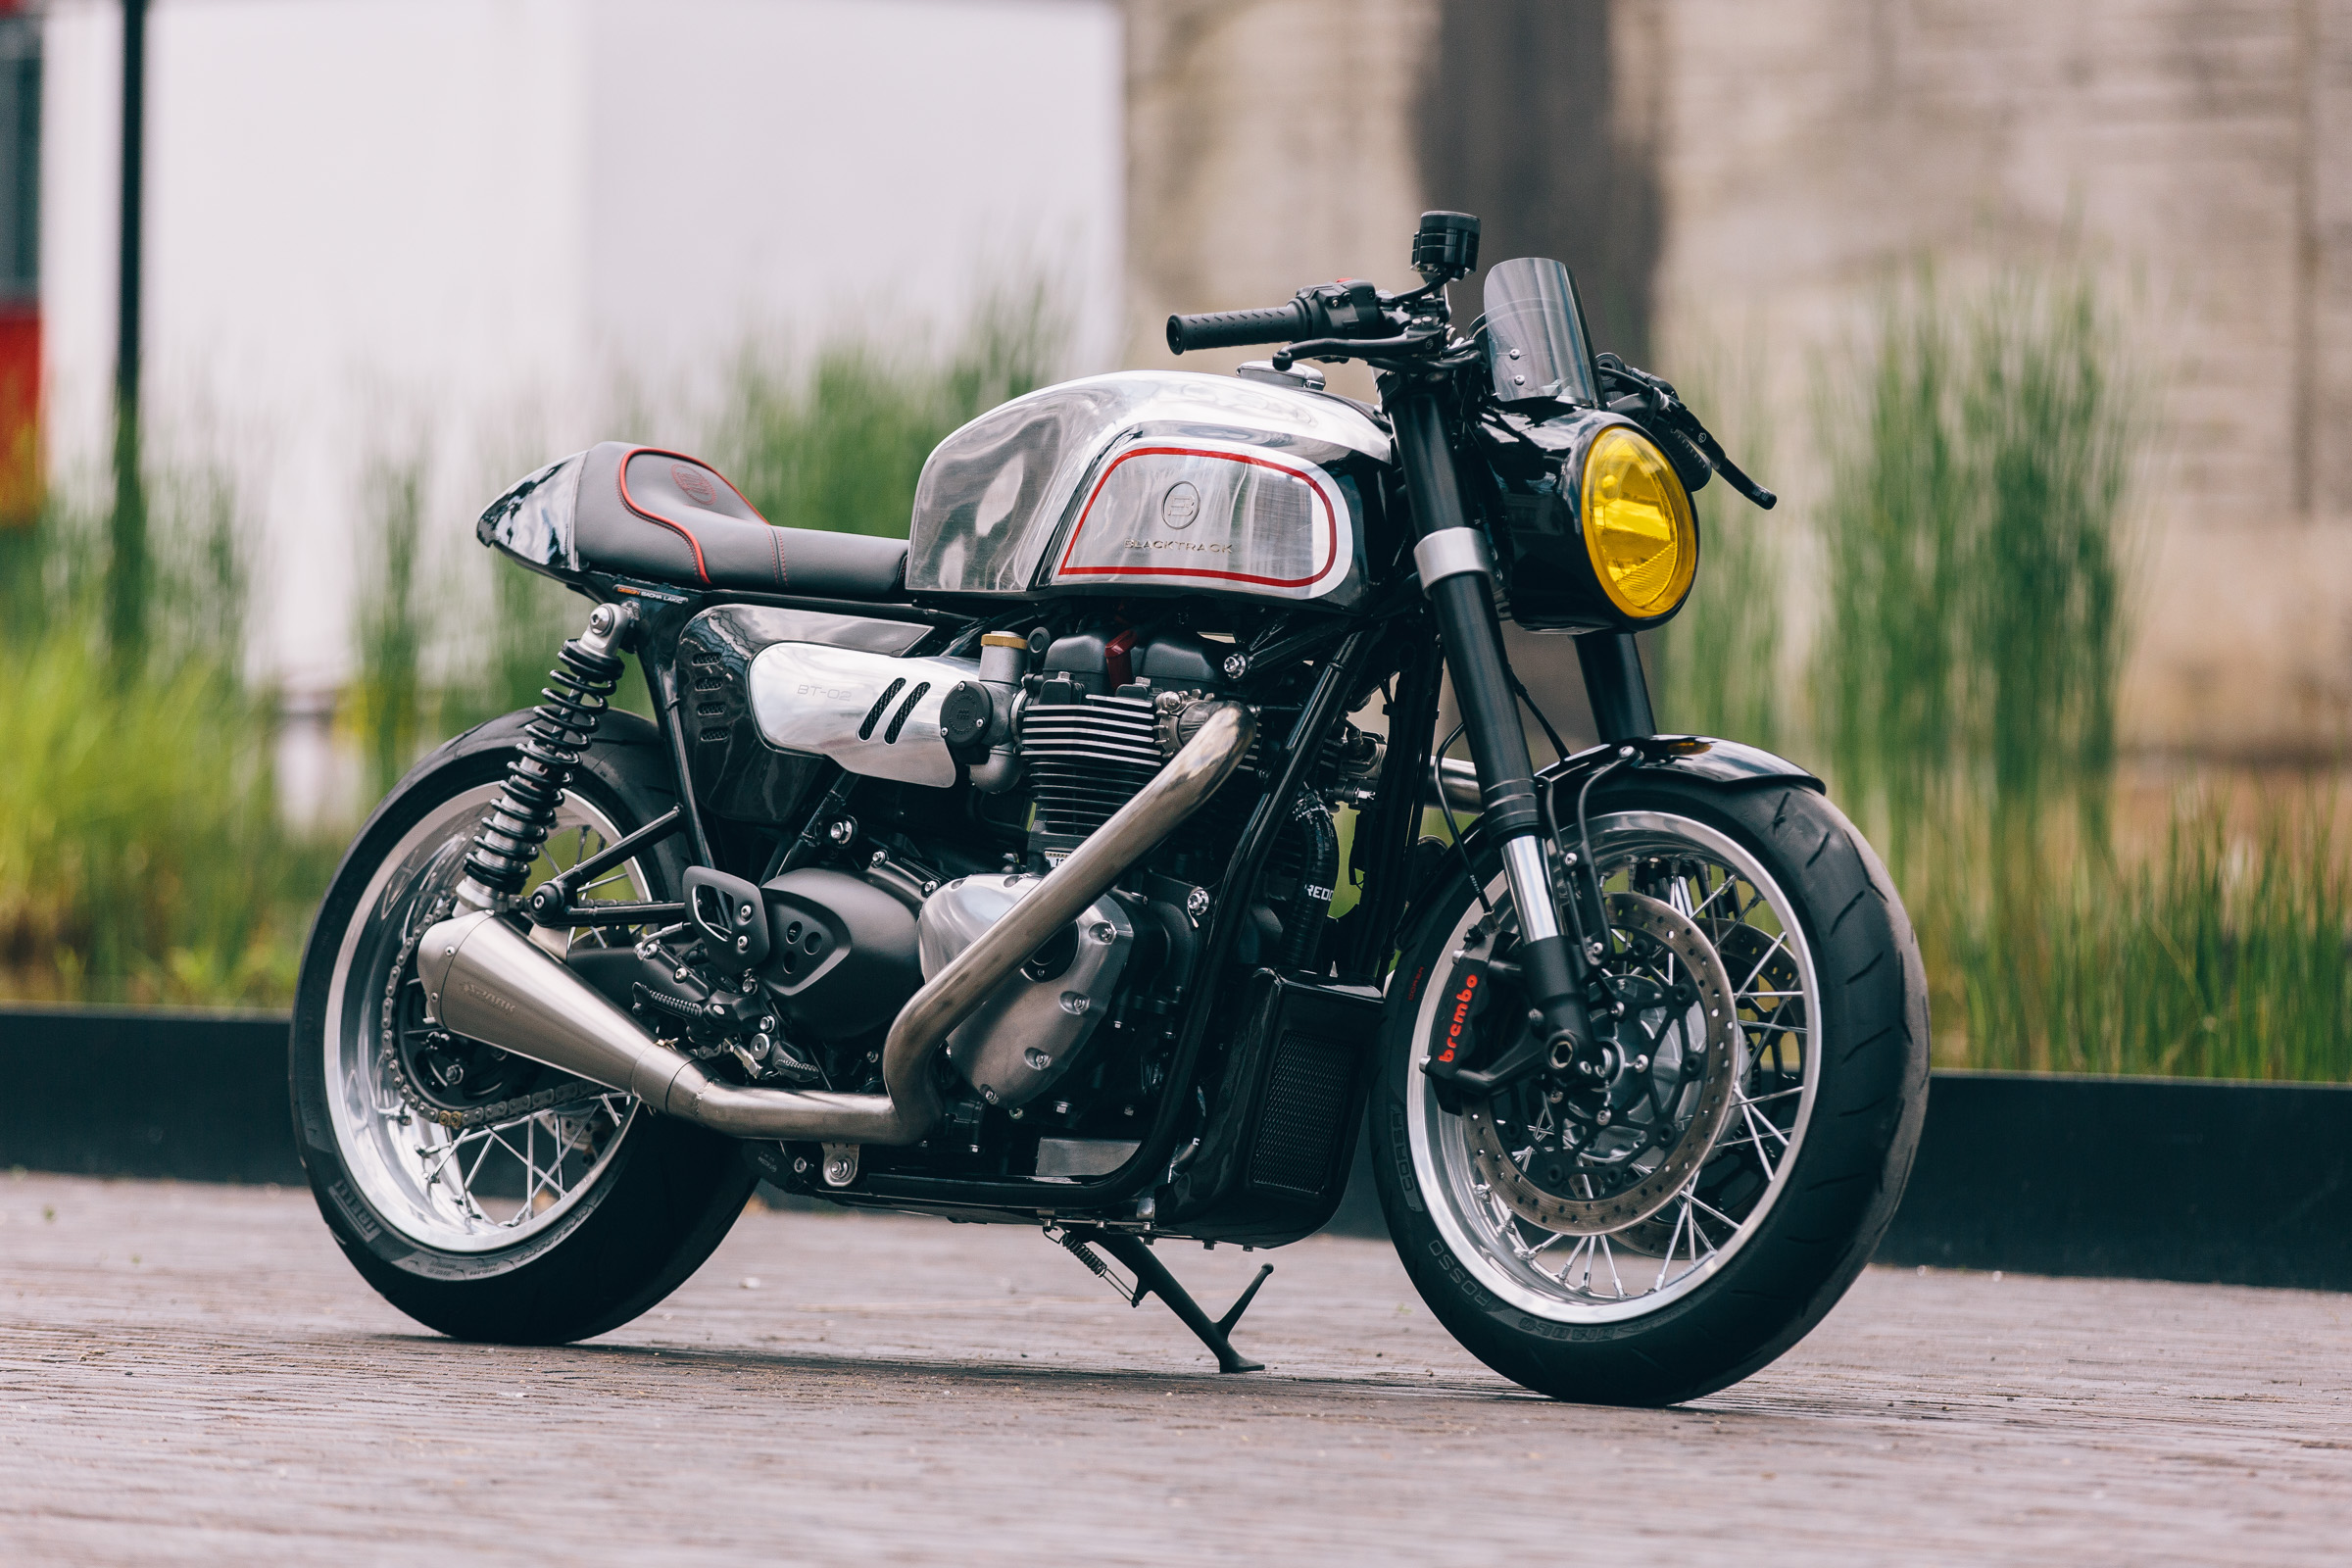 Blacktrack cafe racer BT02 THRUXMAN based on Triumph Thruxton